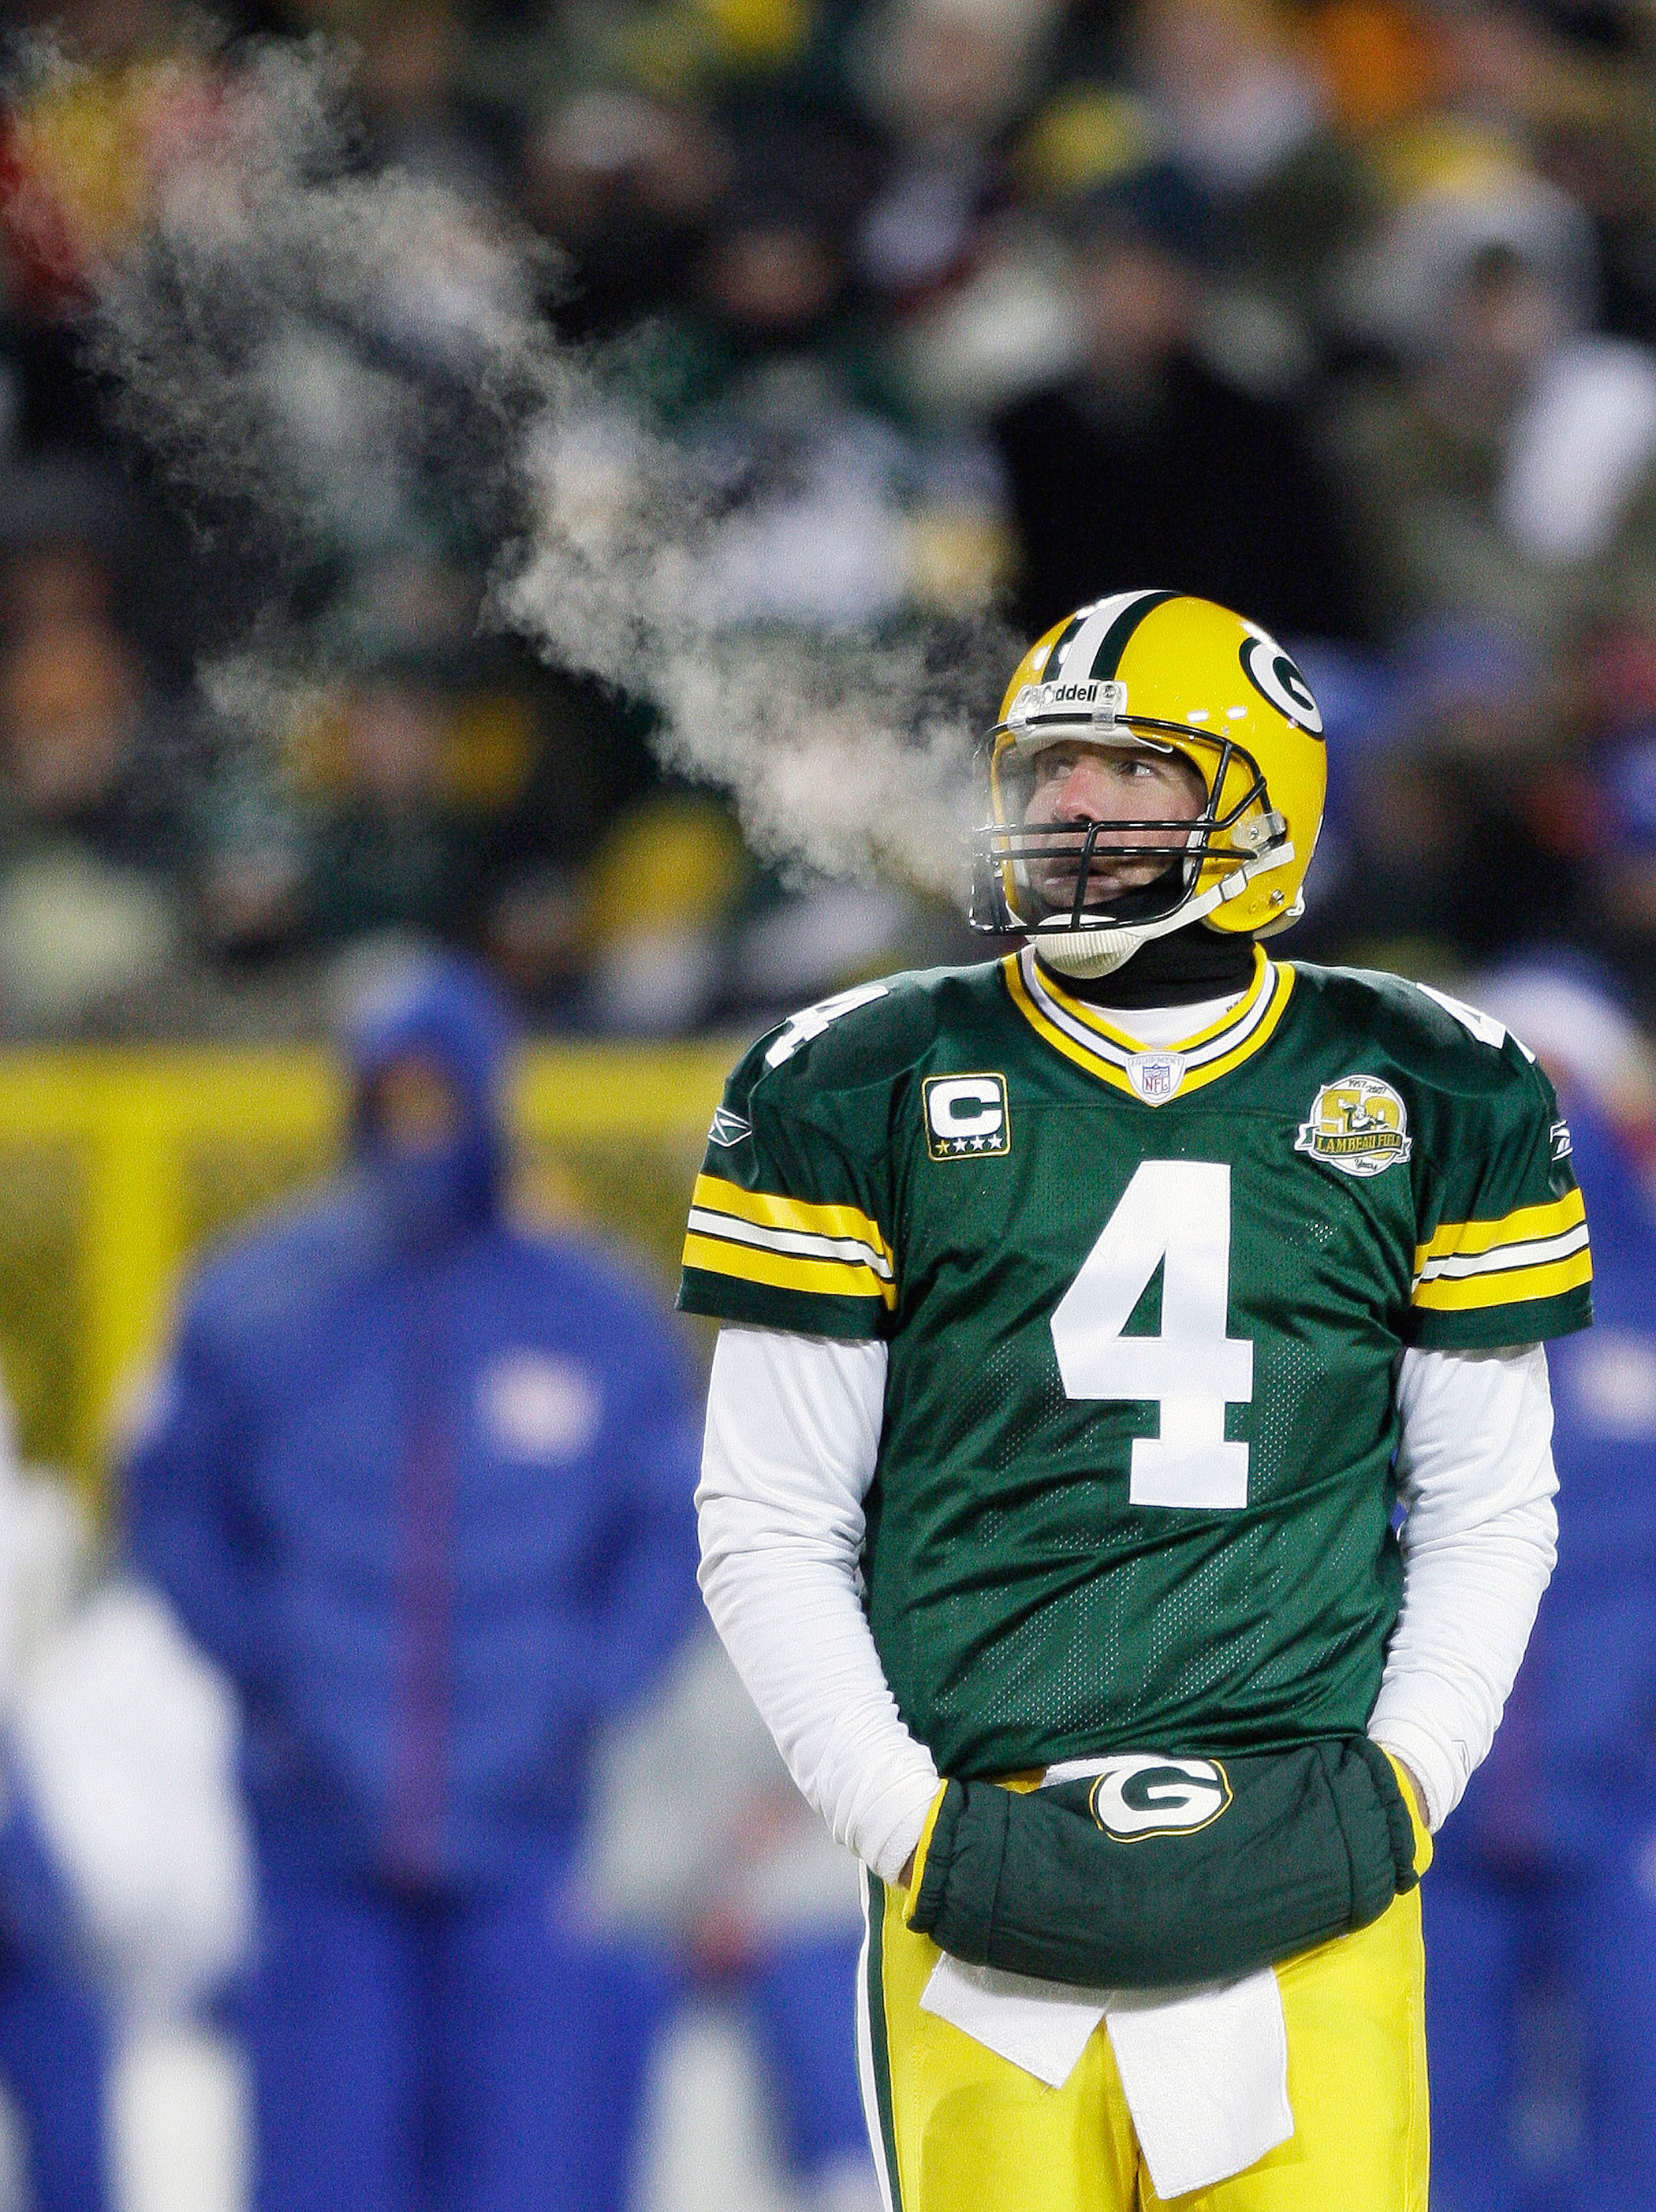 Temperature: -4°F (Wind Chill: -24°F).                               On Jan. 20, 2008, the Green Bay Packers faced the New York Giants in a frigid NFC championship football game. Here, Packers quarterback Brett Favre warms his hands at  Lambeau Field in Green Bay, Wis.